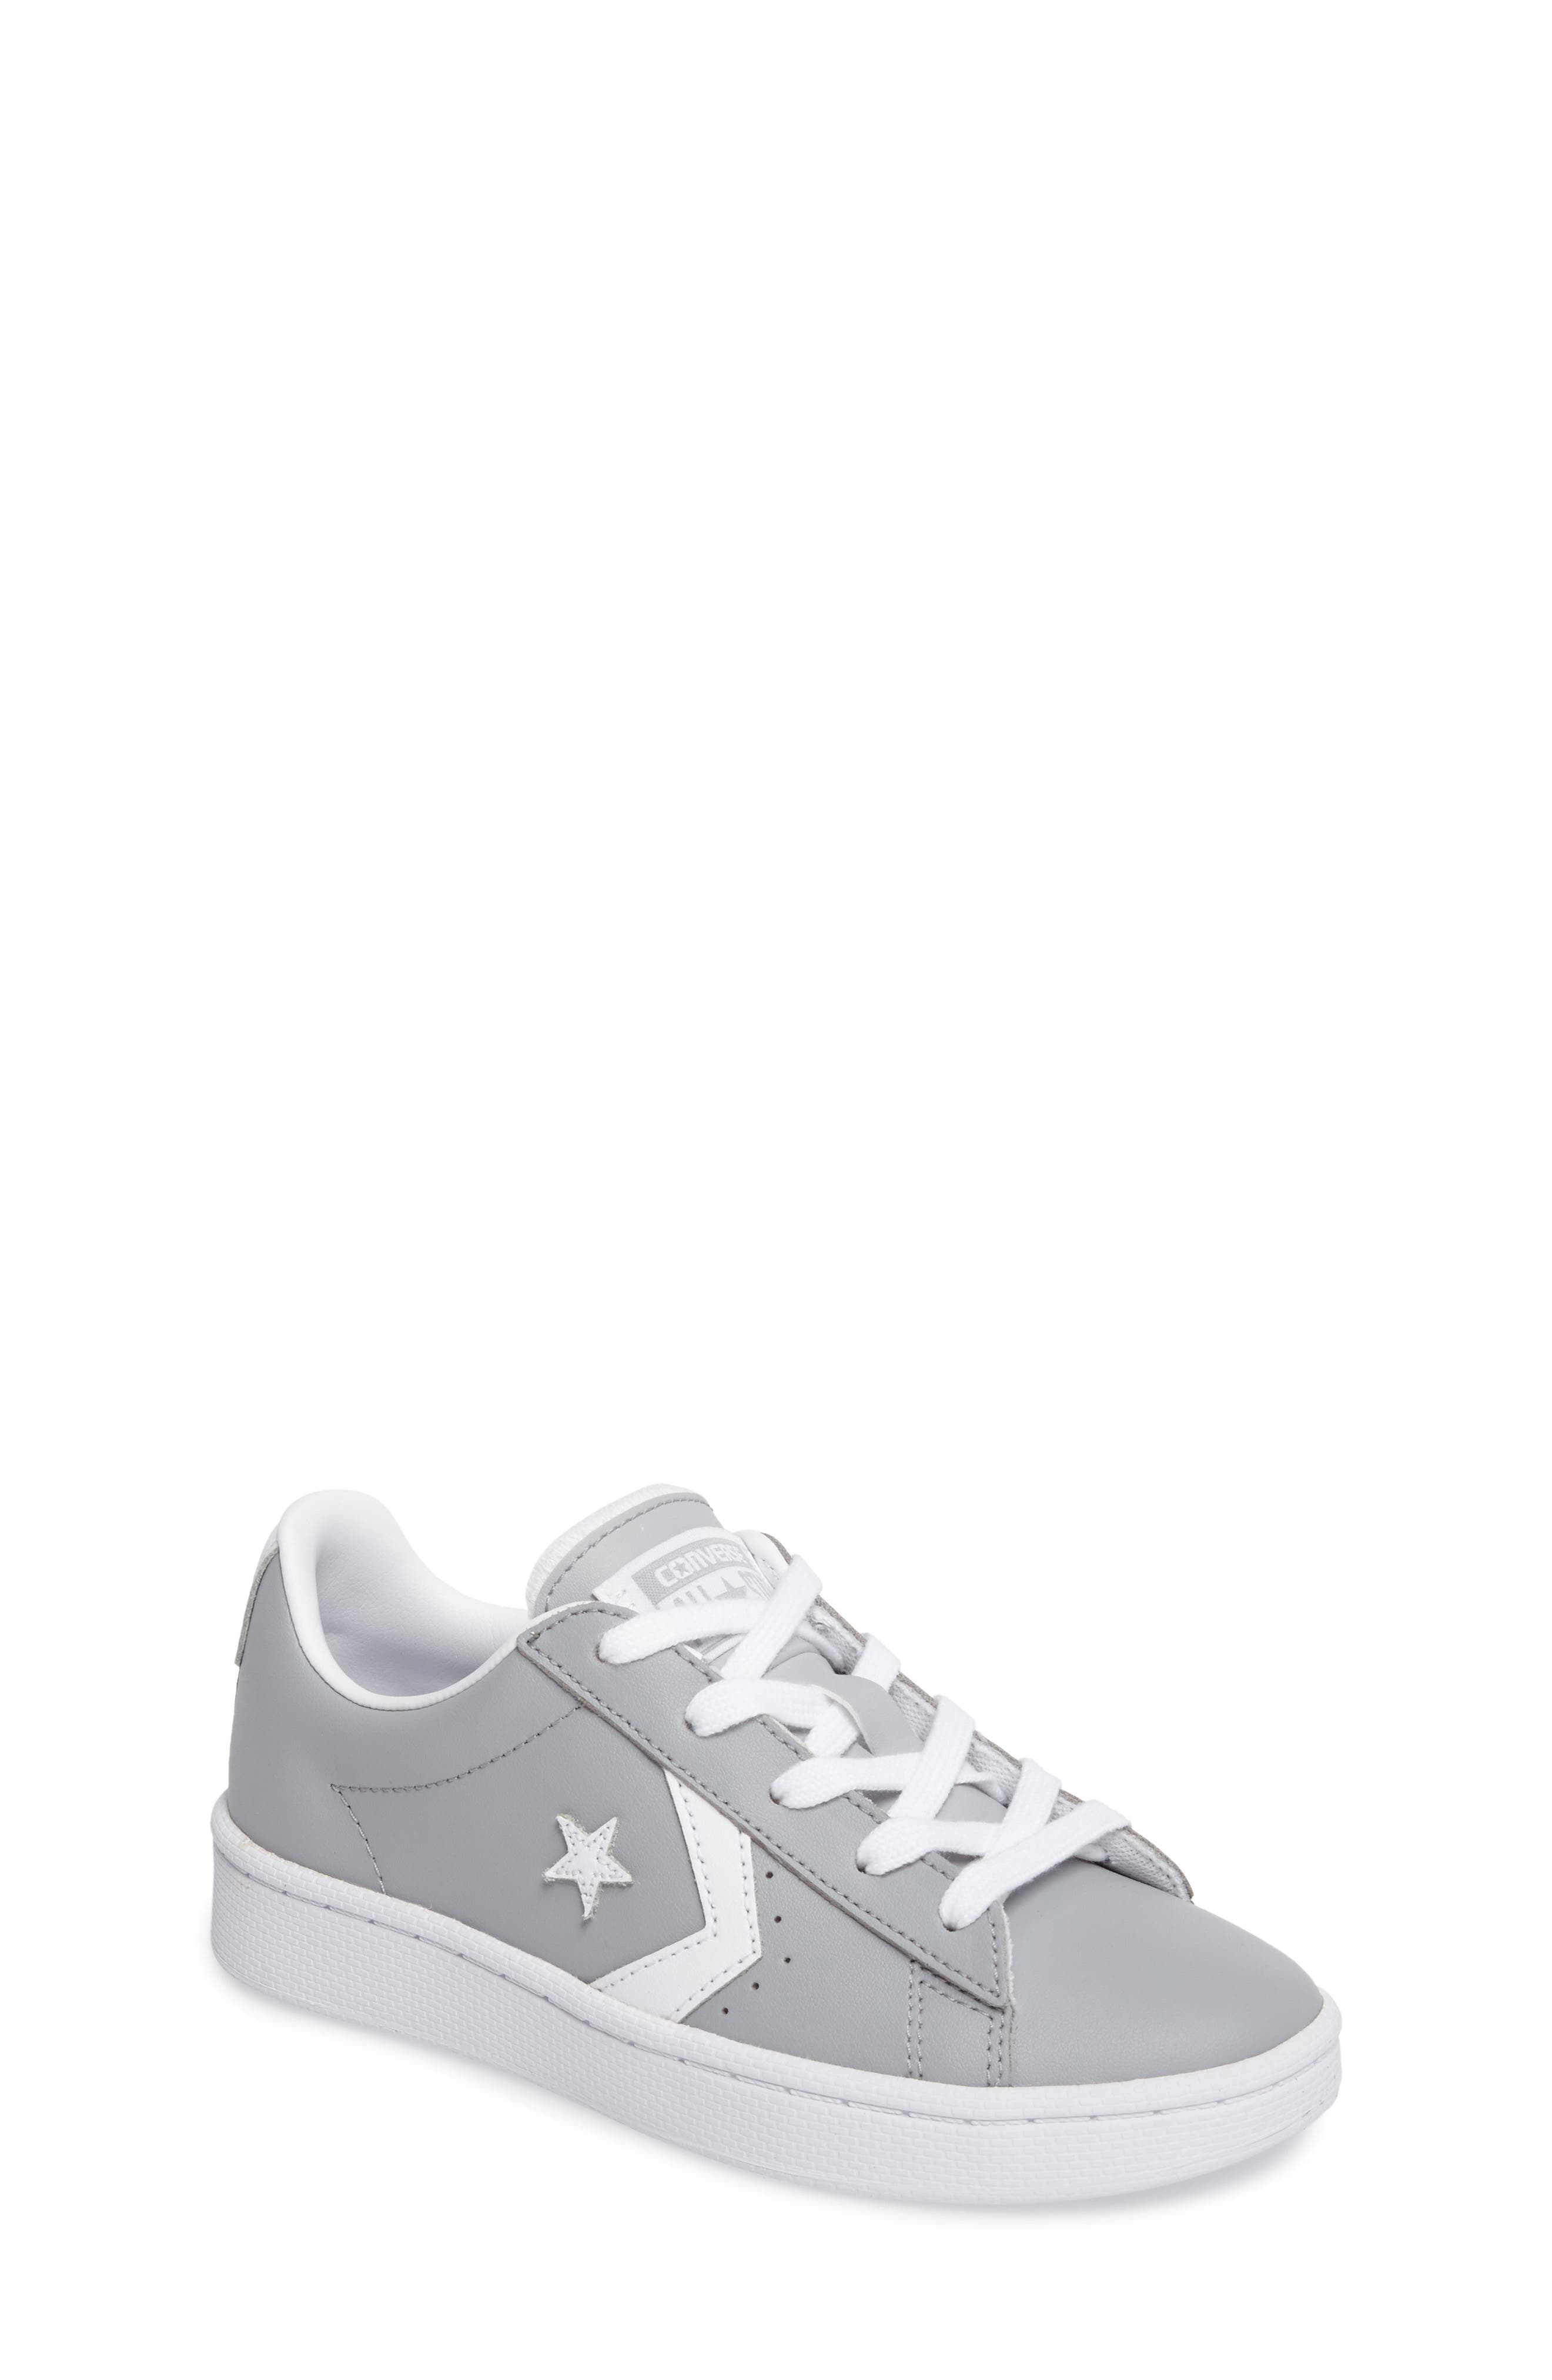 All Star<sup>®</sup> Pro Leather Low Top Sneaker,                         Main,                         color, 097